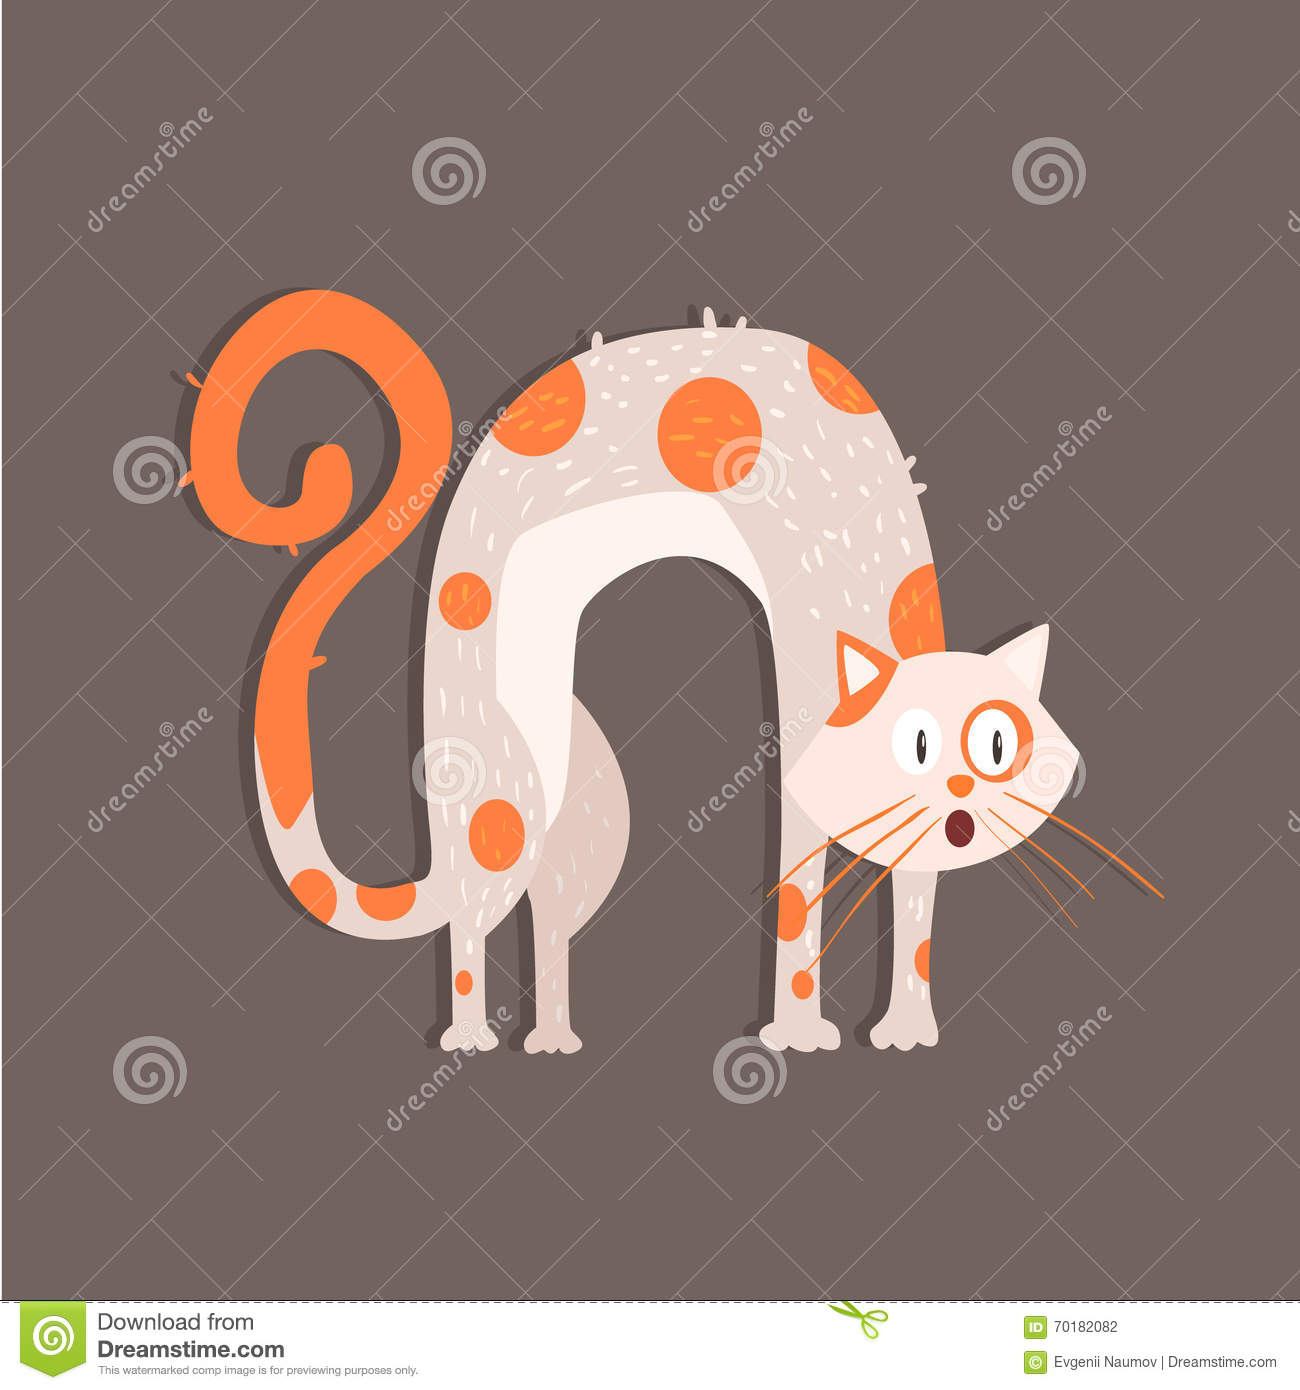 Cat With Arched Back Image